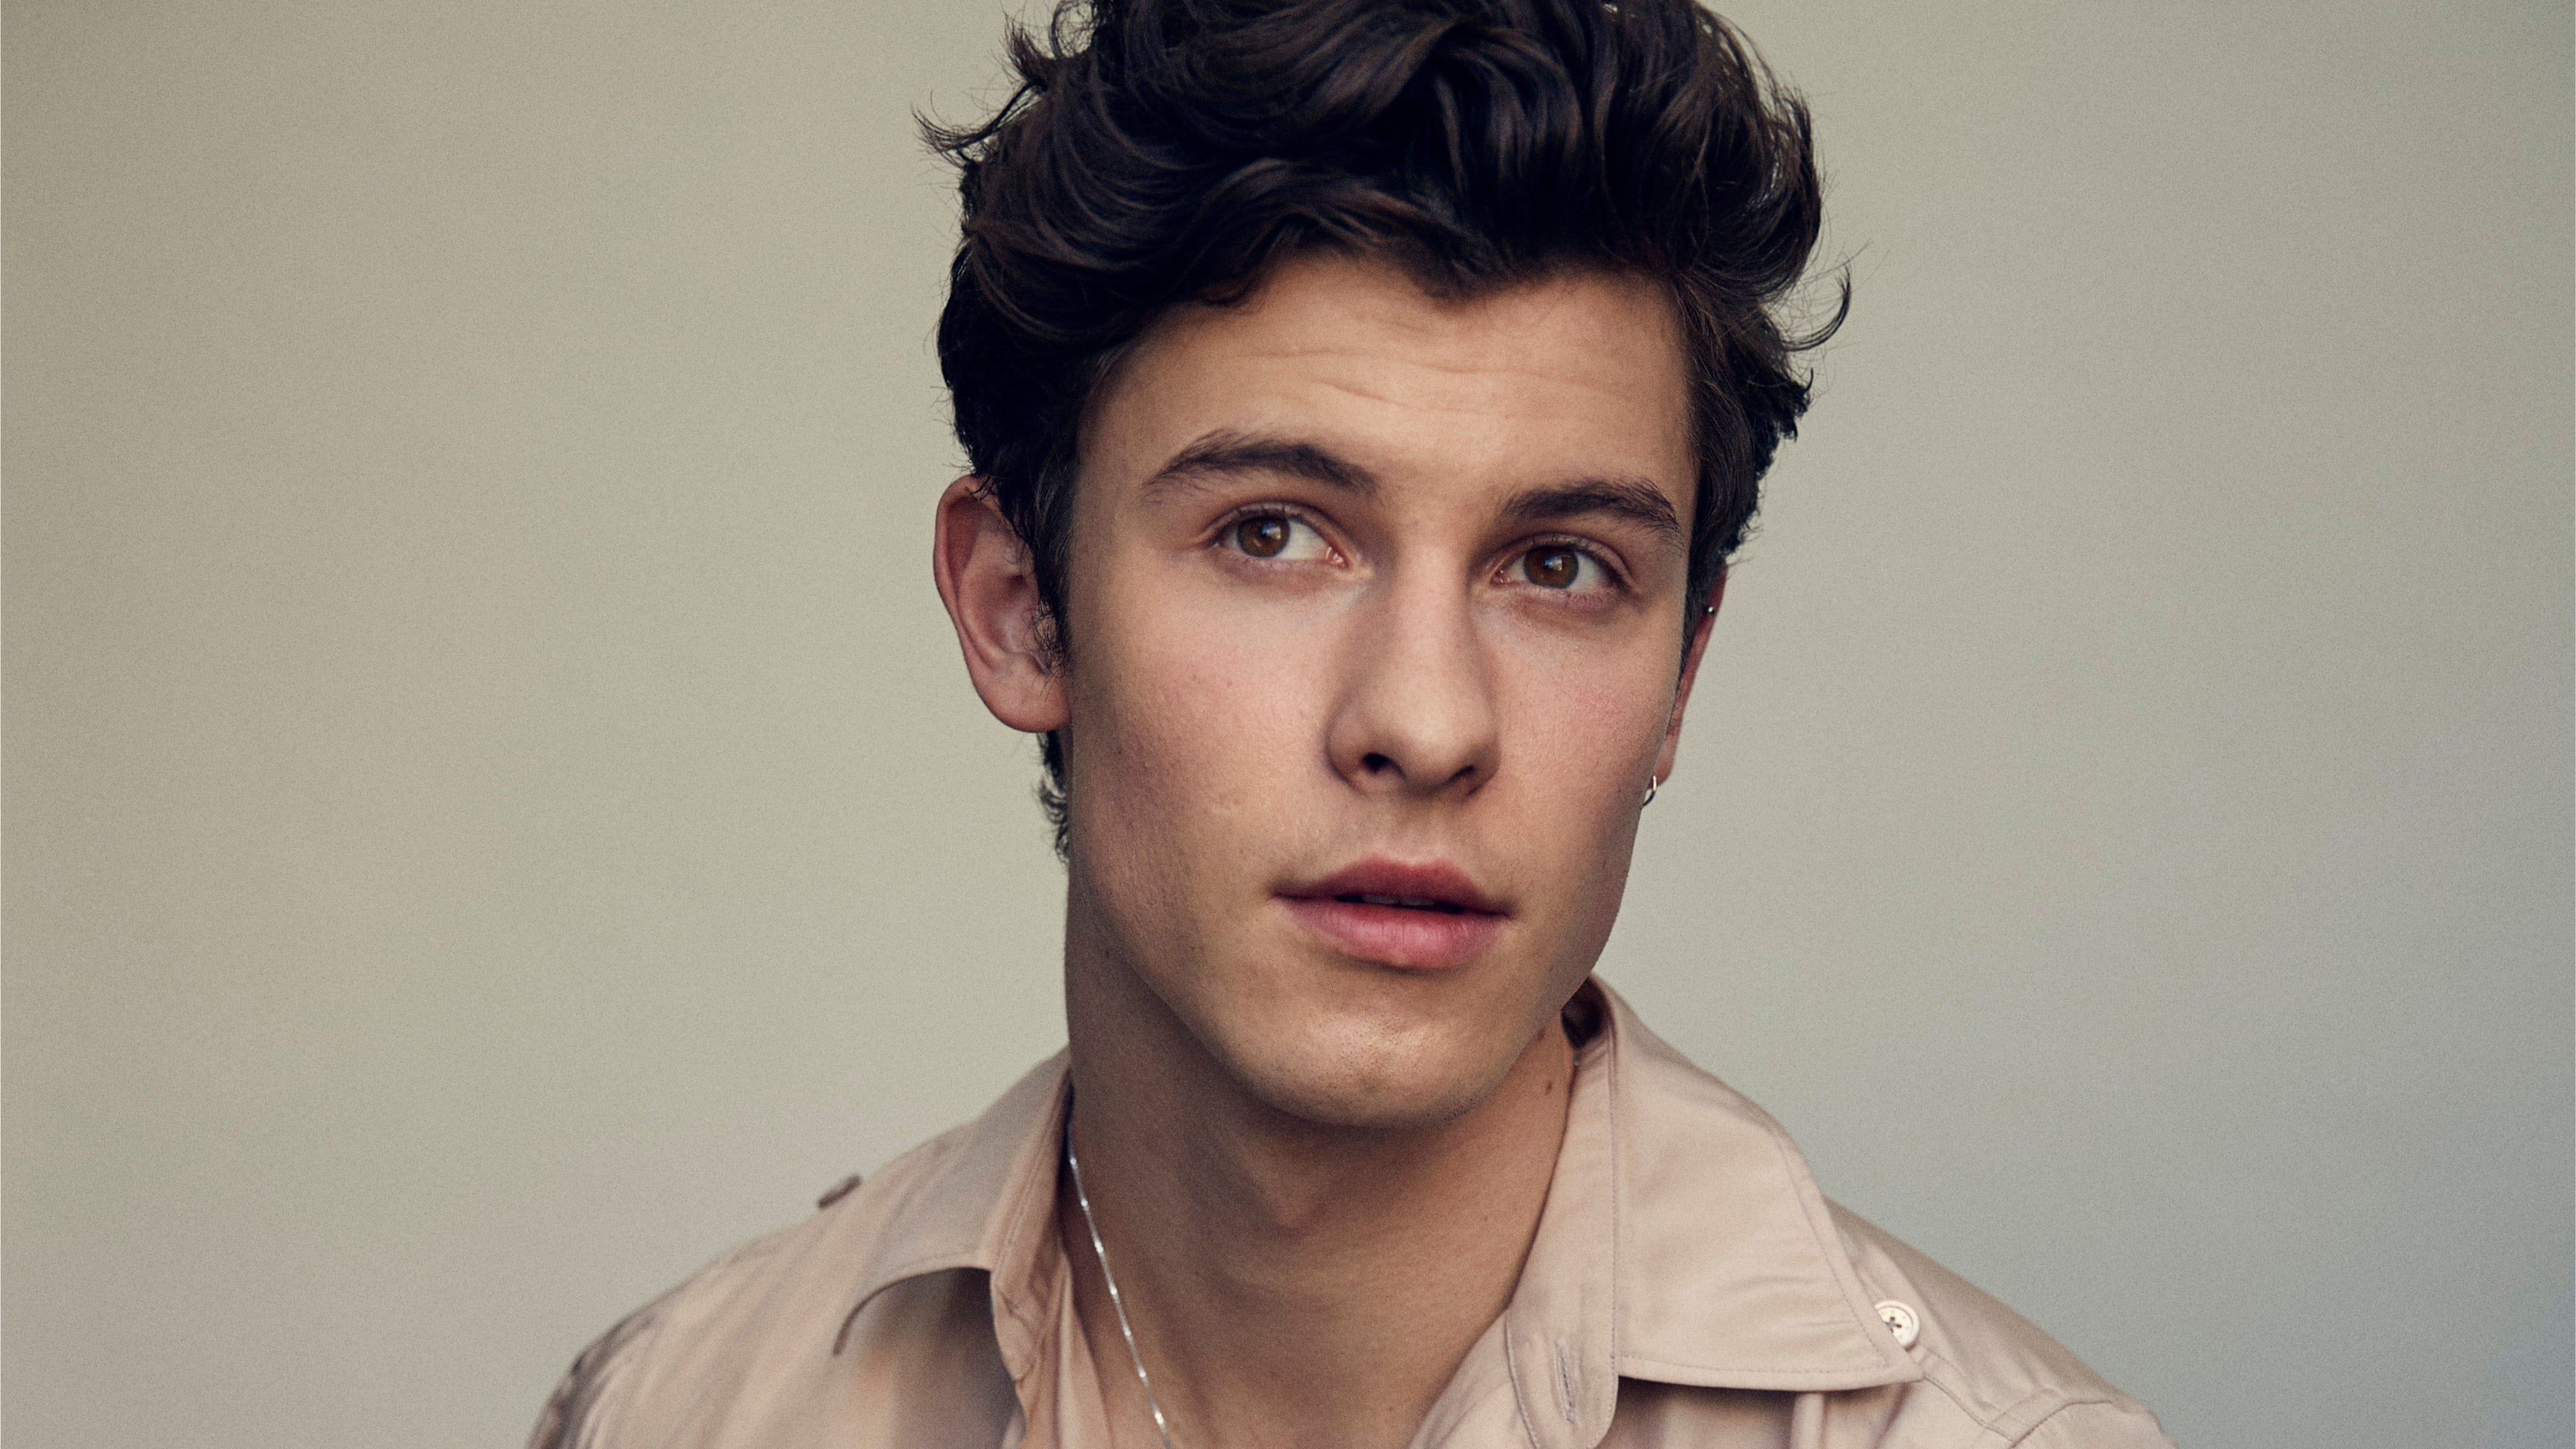 Shawn Mendes Wallpapers Top Free Shawn Mendes Backgrounds